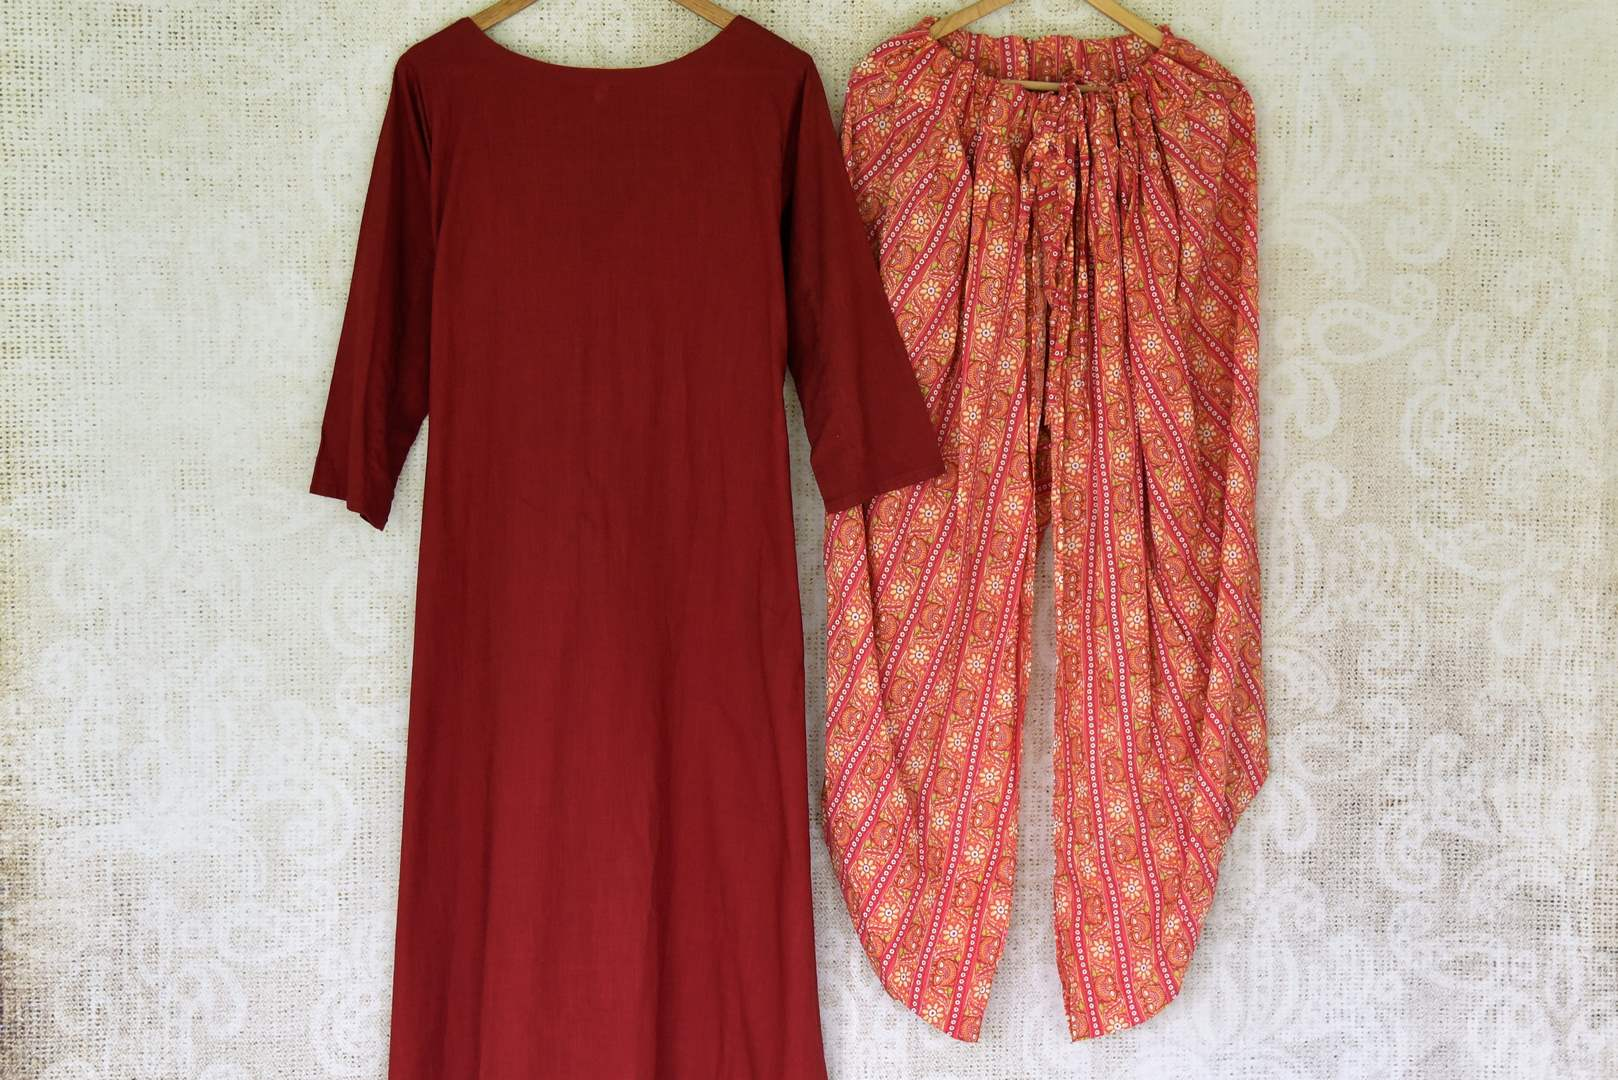 Buy maroon linen kurta online in USA with printed cotton salwar from Pure Elegance Indian fashion store in USA. Make a stylish fashion statement this summer with a range of exquisite Indian designer dresses available online and at our clothing store in USA. Shop now.-front